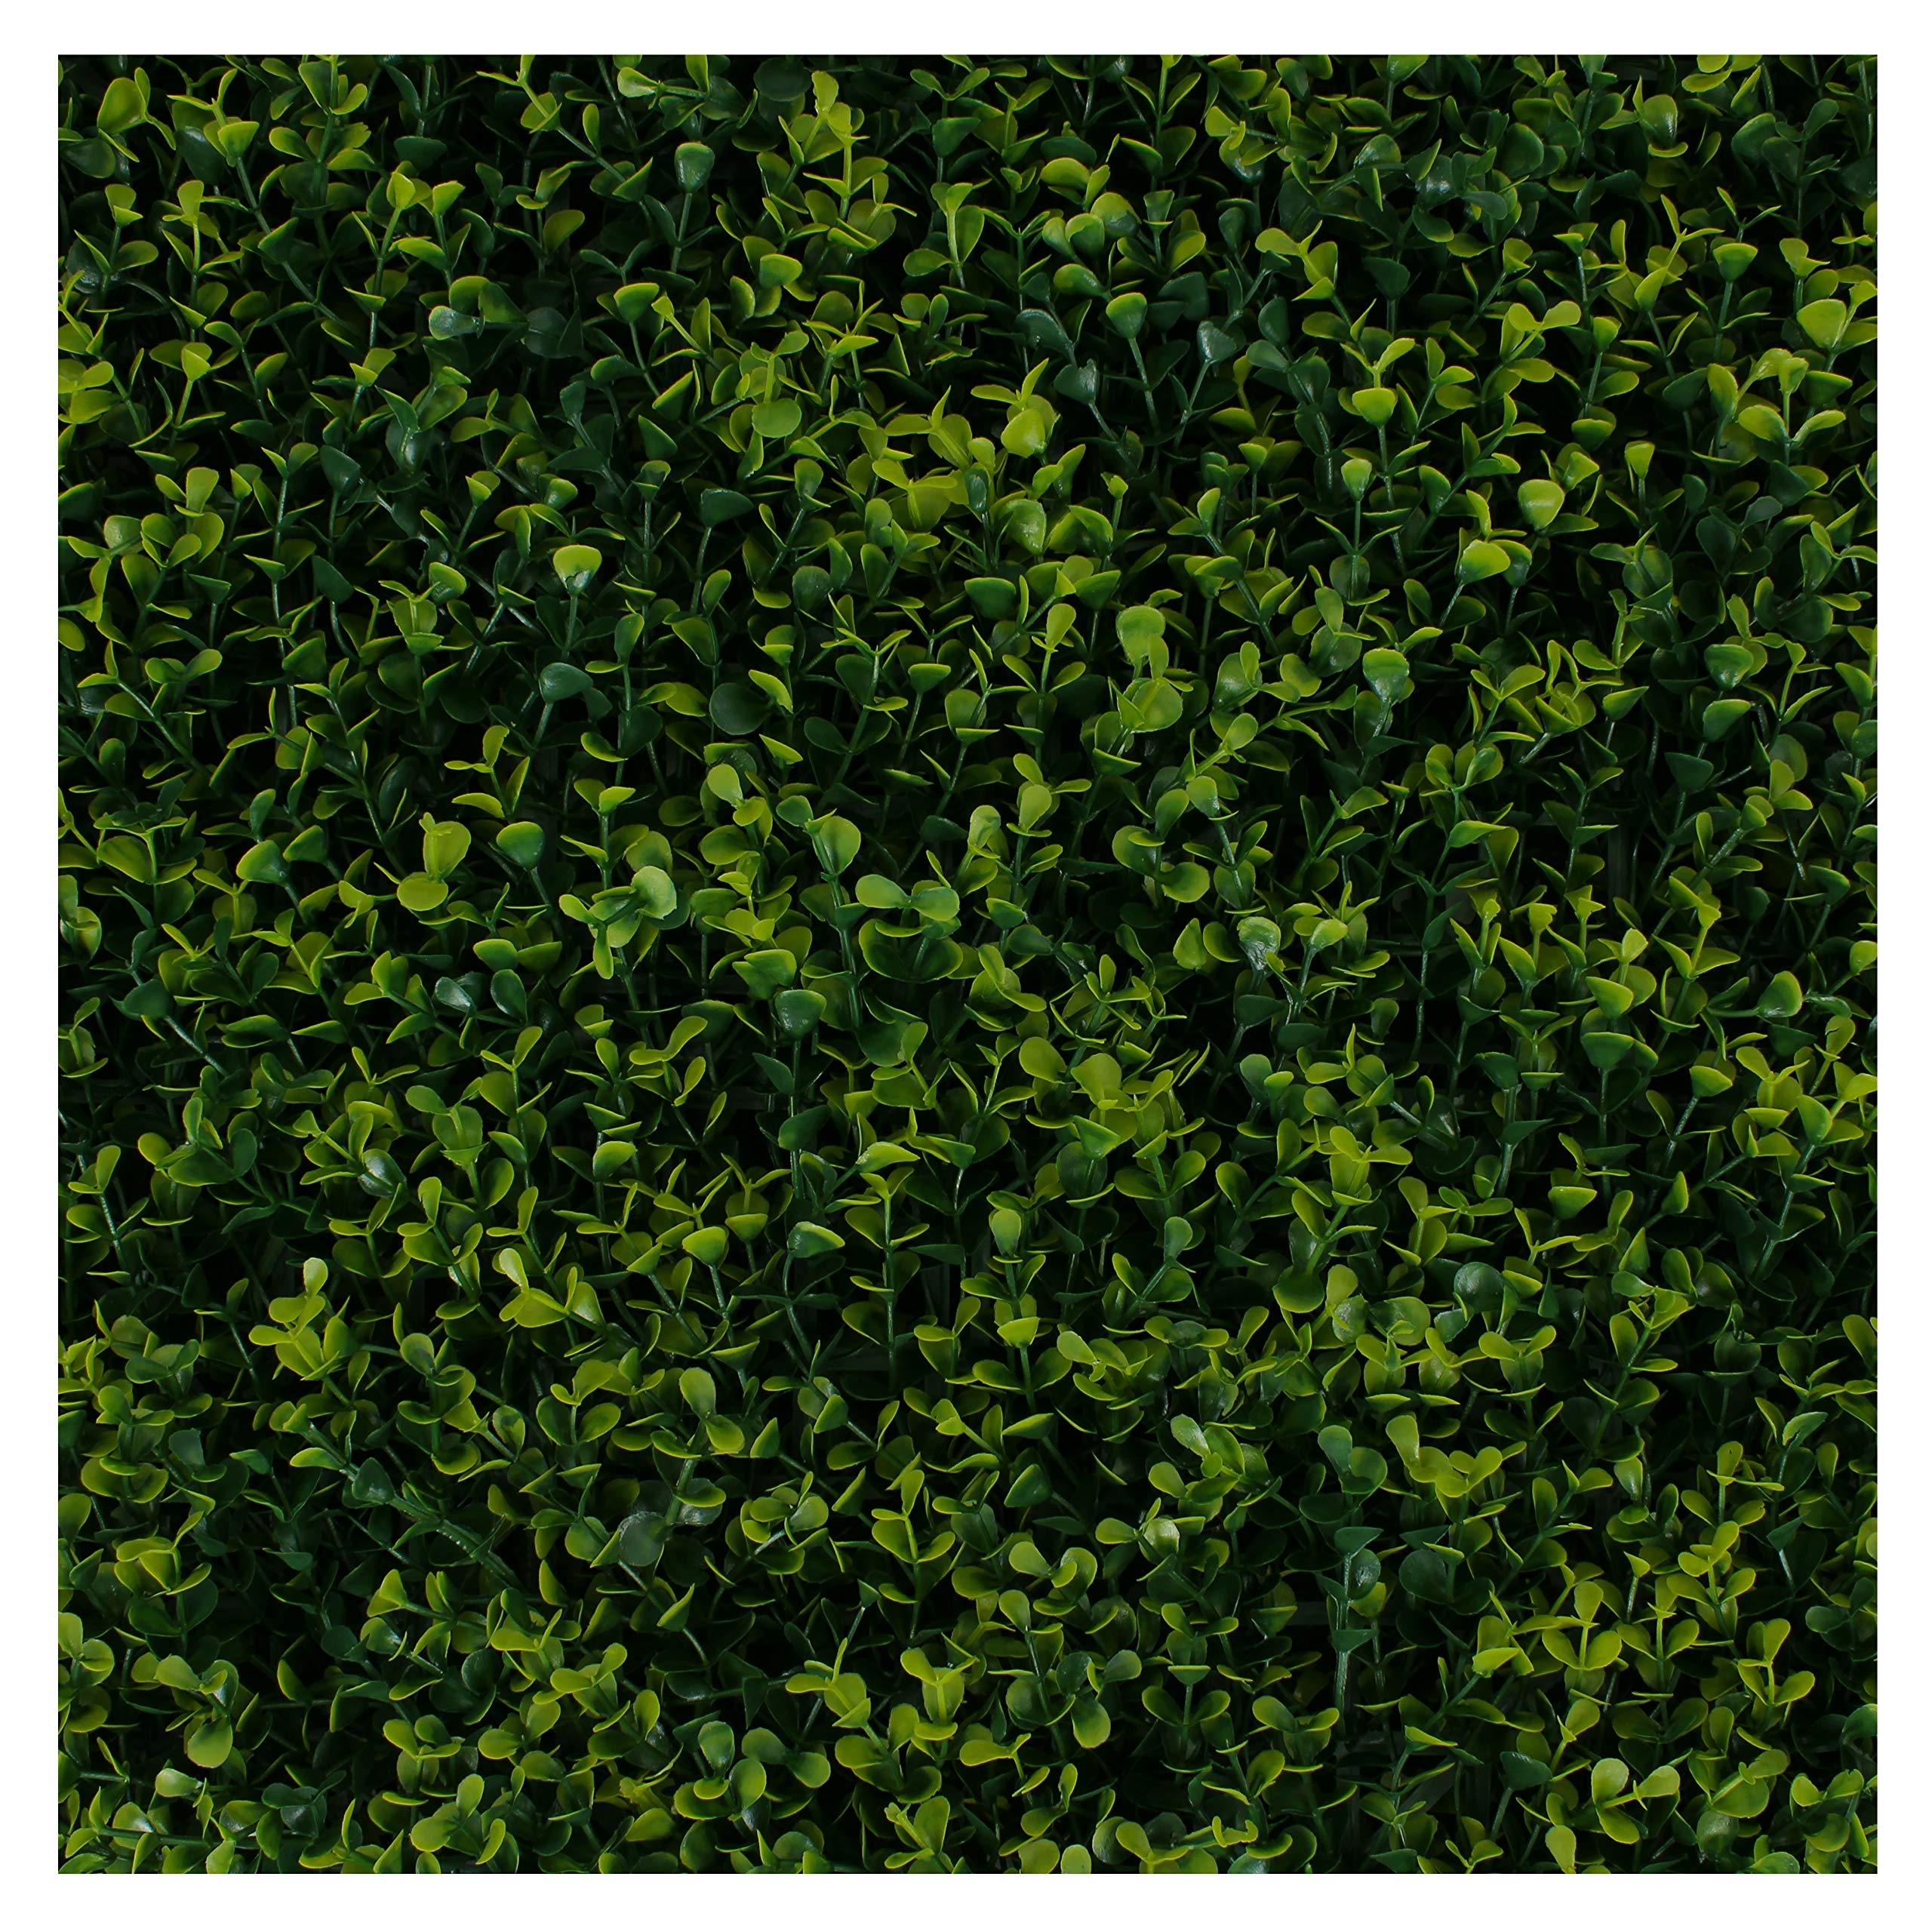 Milltown Merchants Artificial Hedge - Outdoor Artificial Plant - Great Boxwood and Ivy Substitute - Sound Diffuser Privacy Fence Hedge - Topiary Greenery Panels (2, Golden Boxwood)